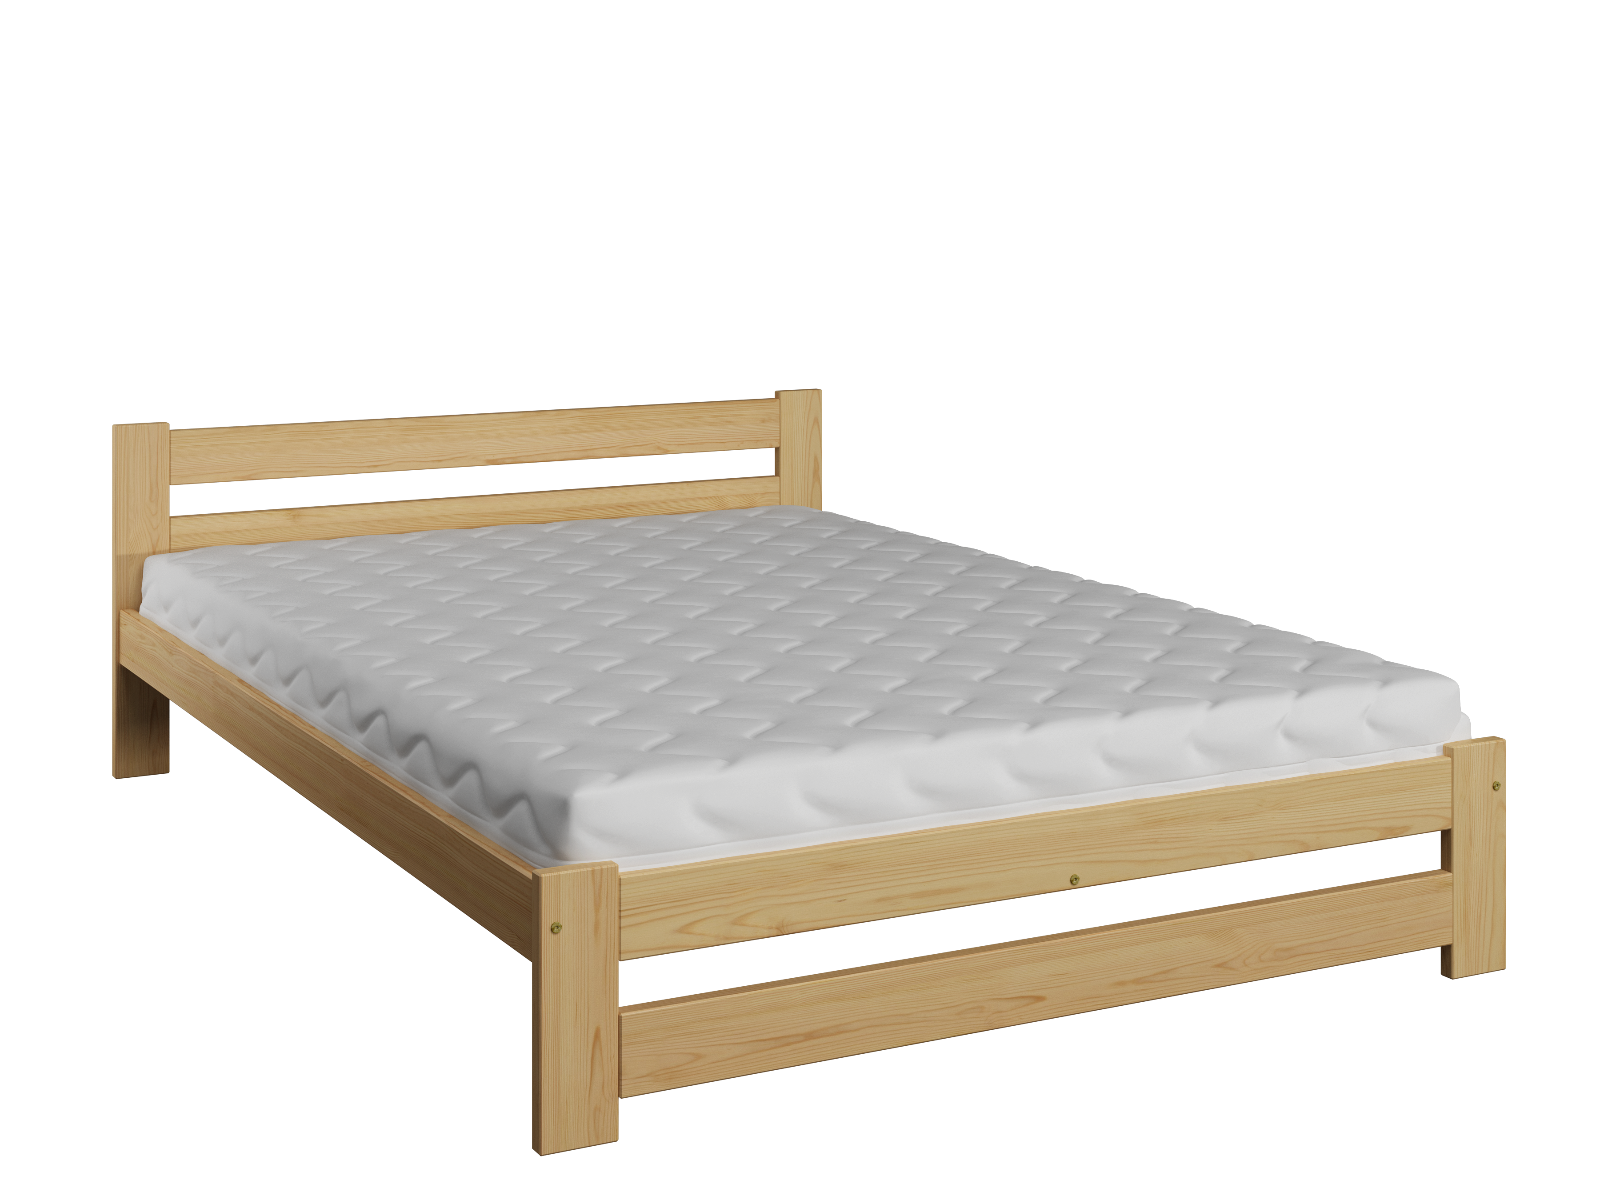 Wooden Pinewood Bed Frame 4Ft Small Double 120X190 Size Slats